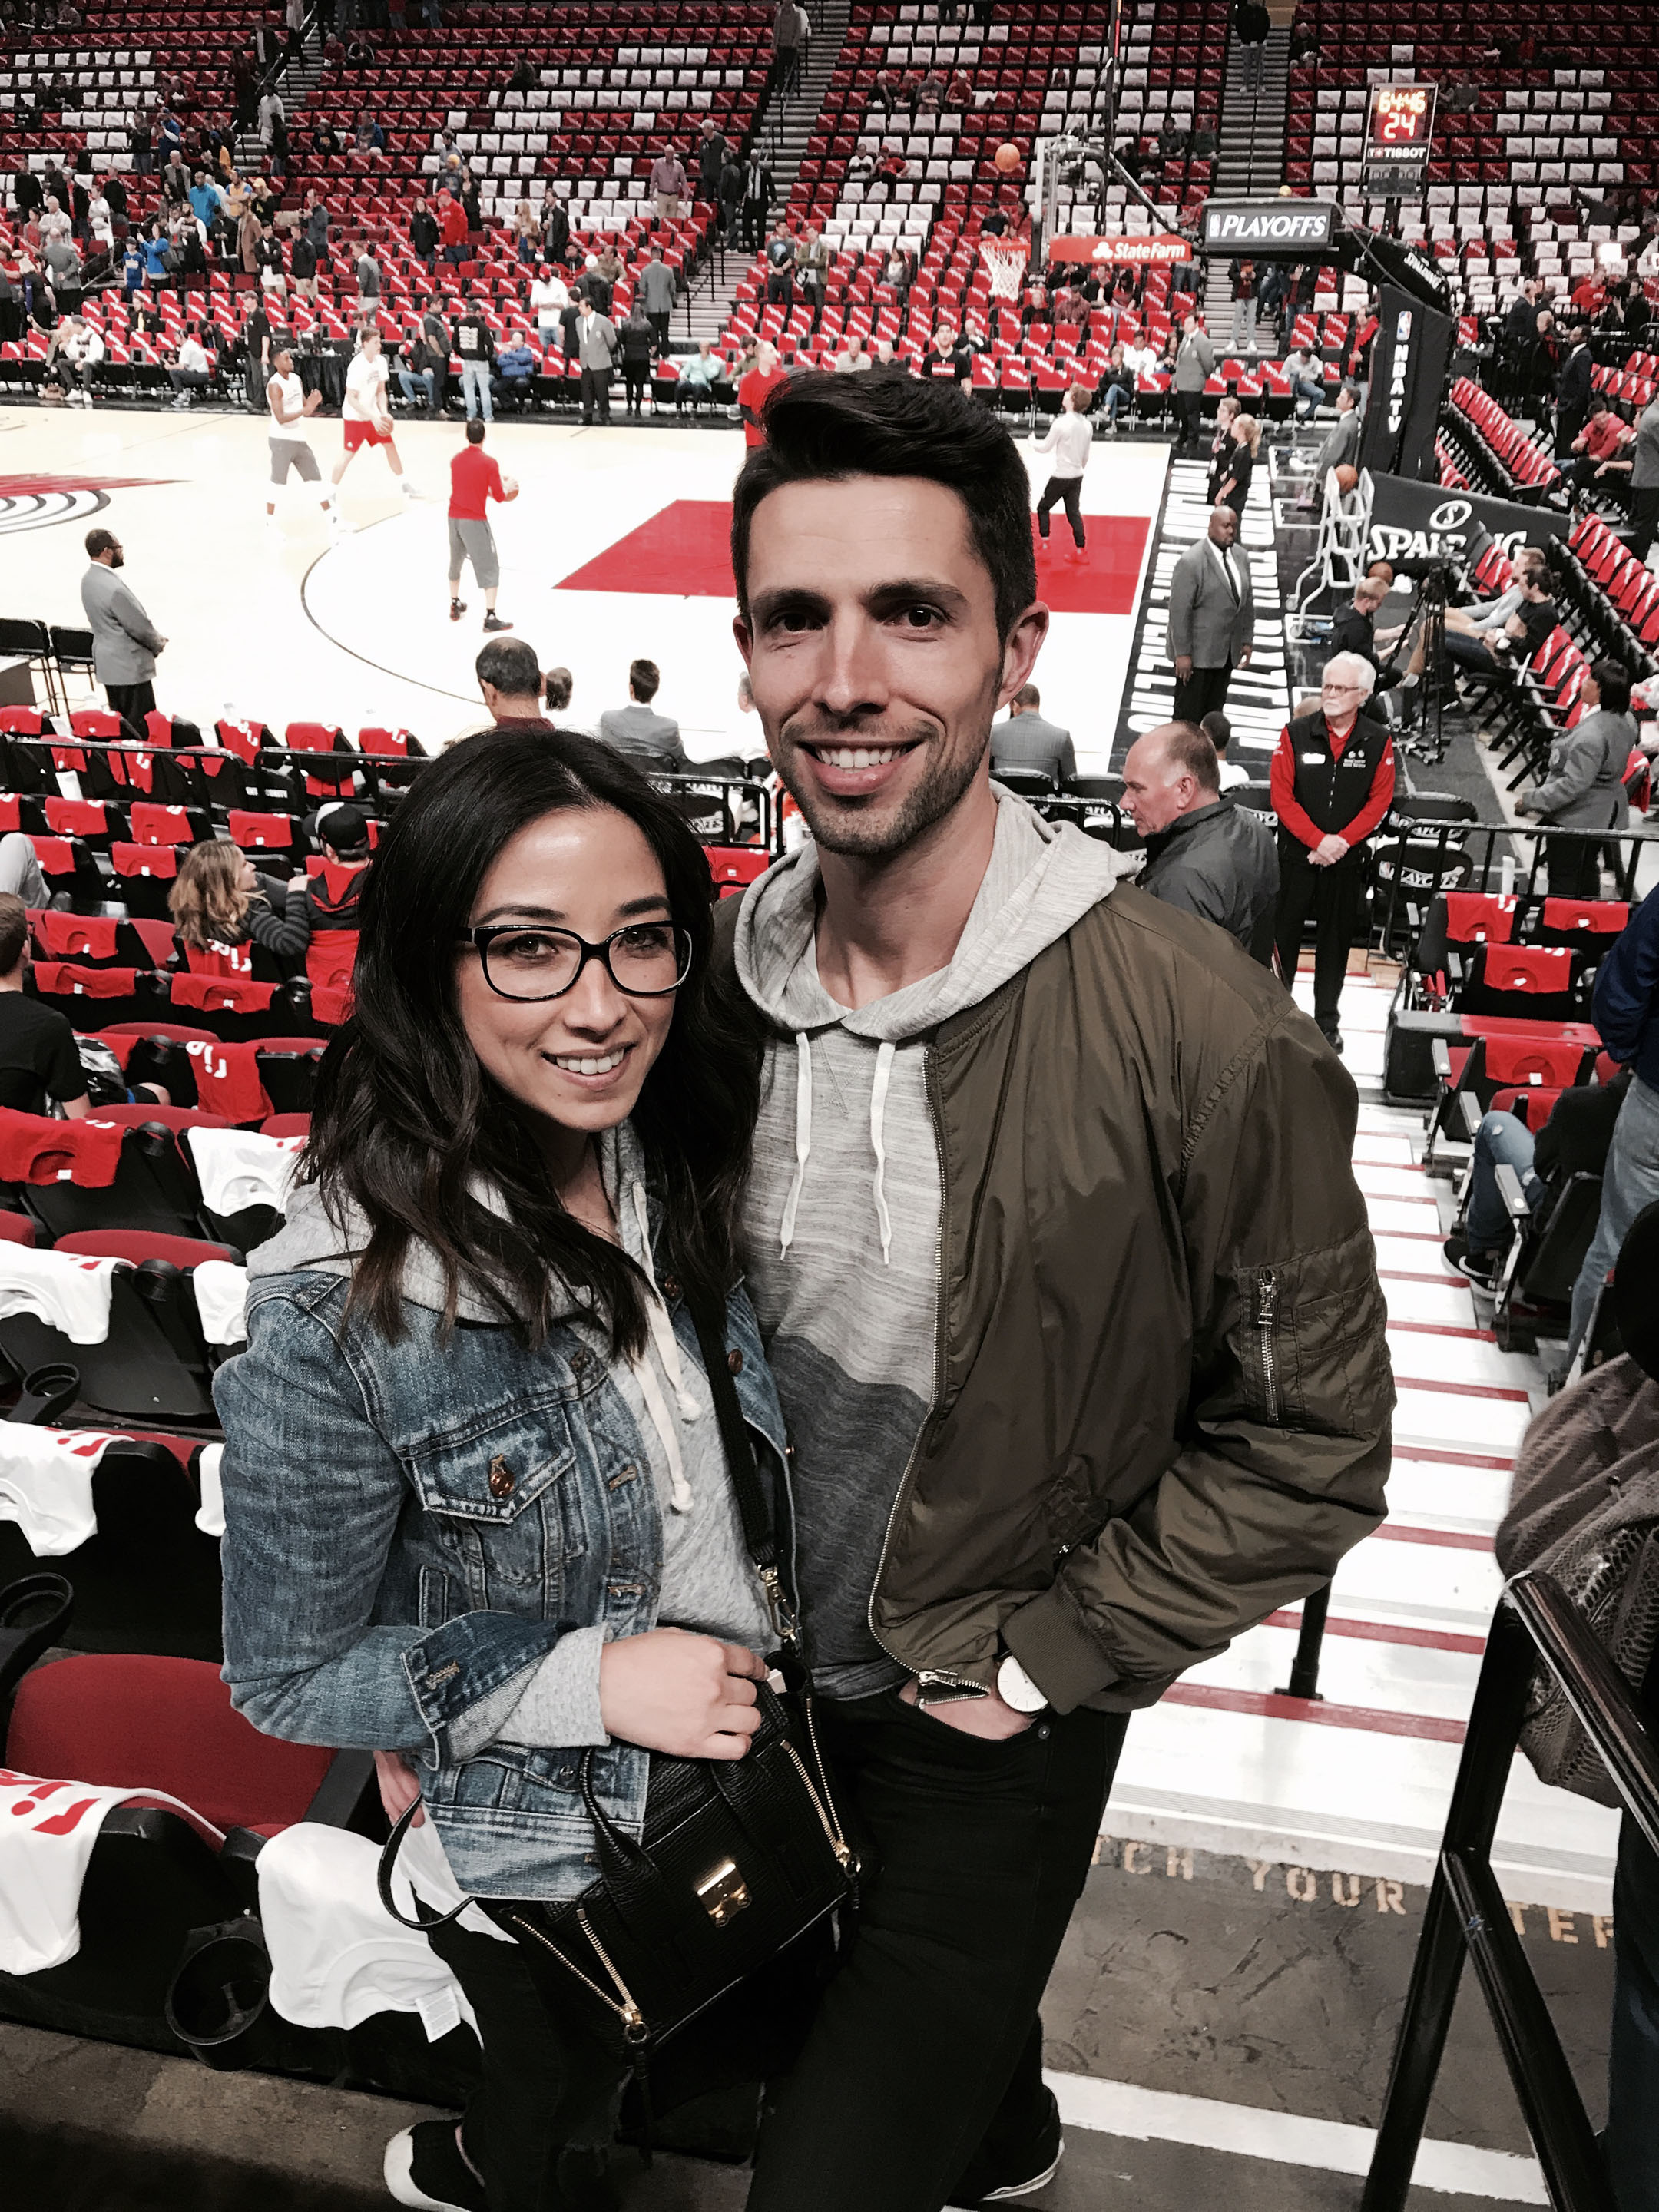 Portland Trail Blazers Game